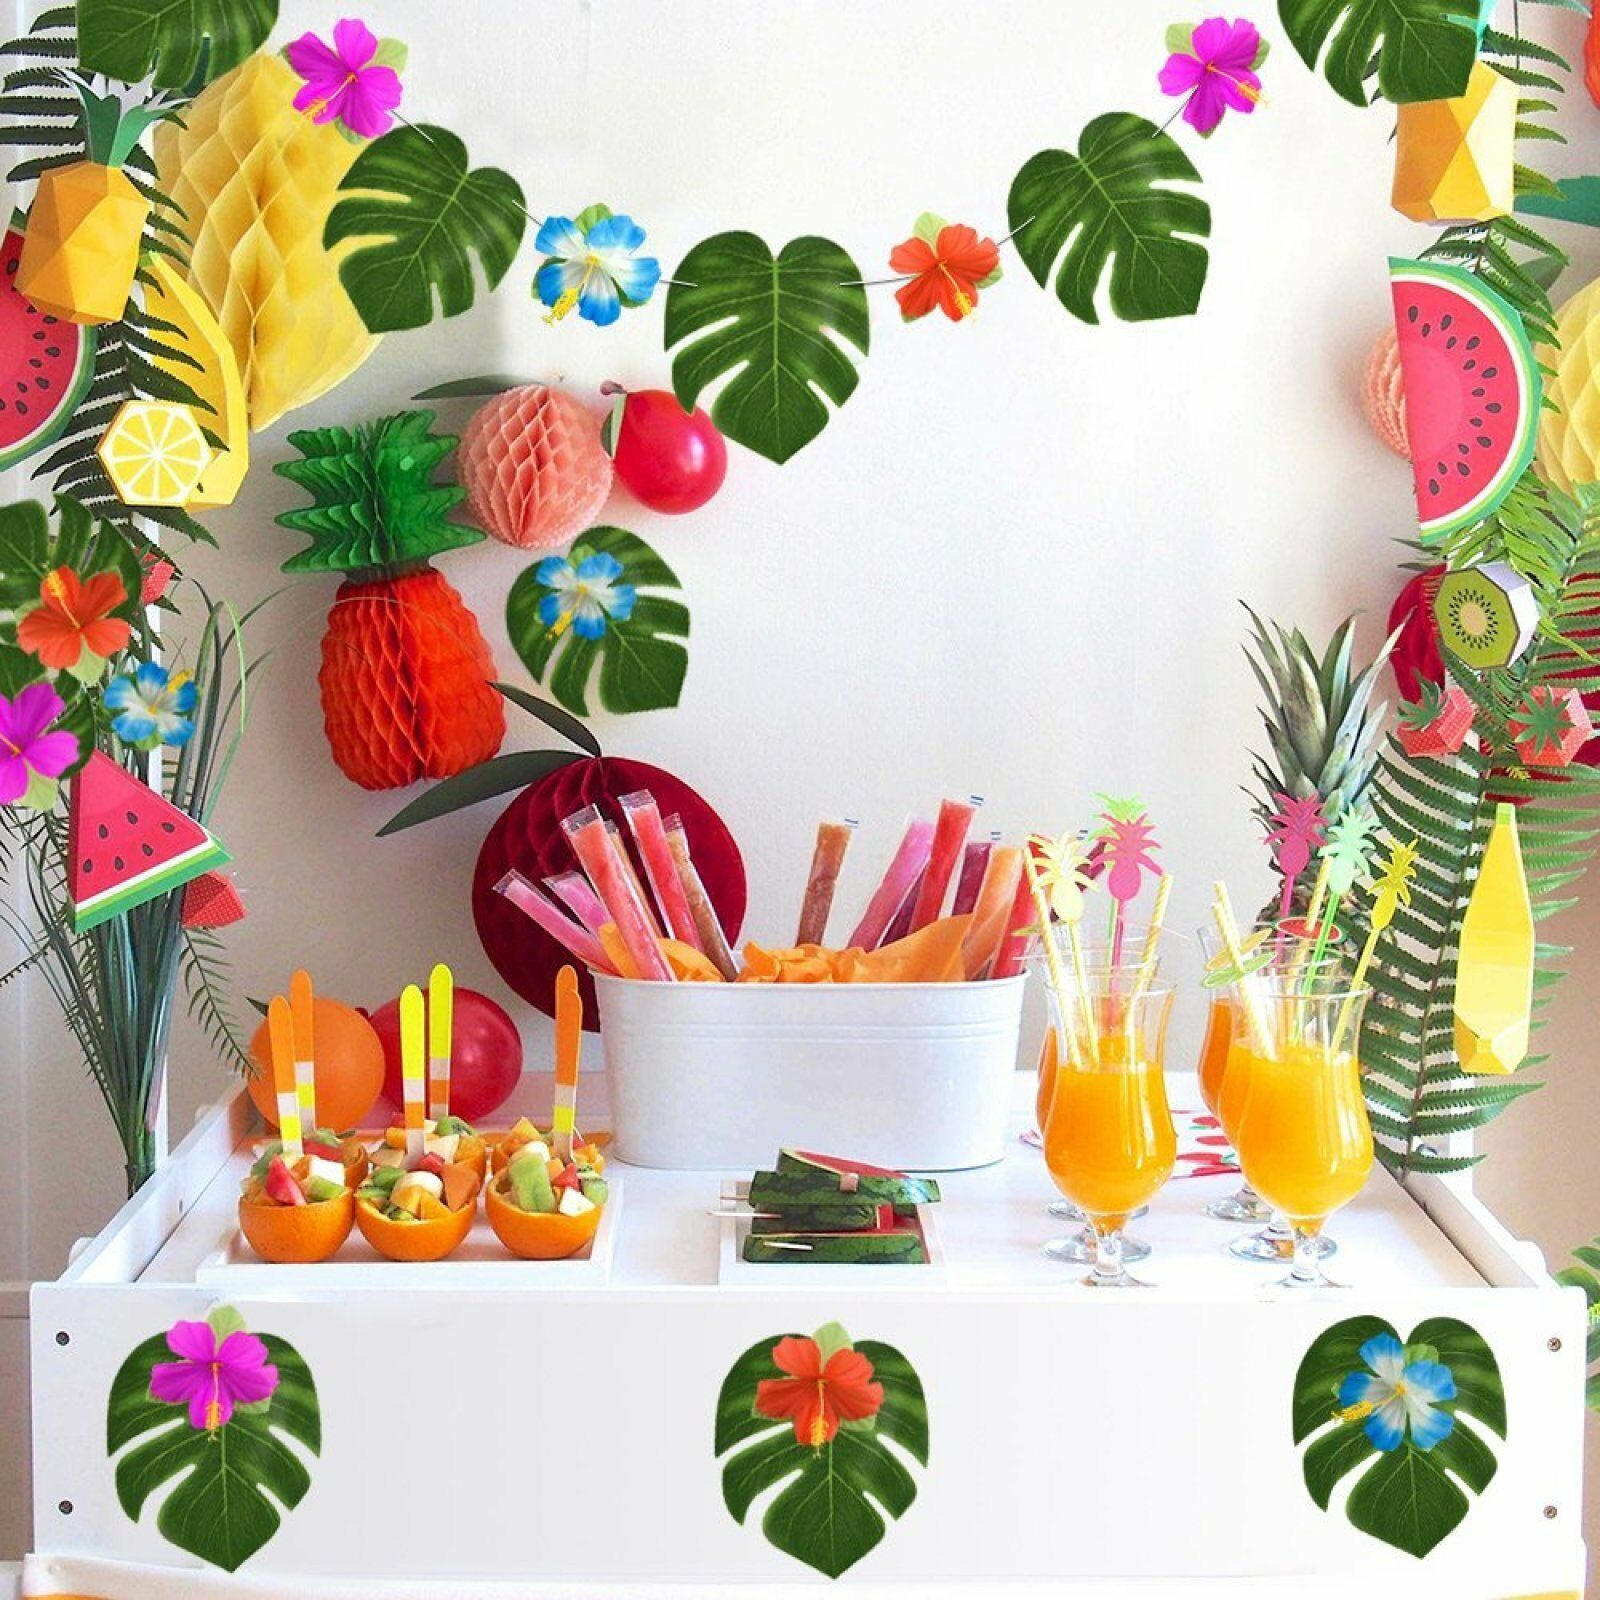 Details About 60 Pc Hawaiian Party Decorations Luau Party Supplies Tiki Theme Decor Flowers